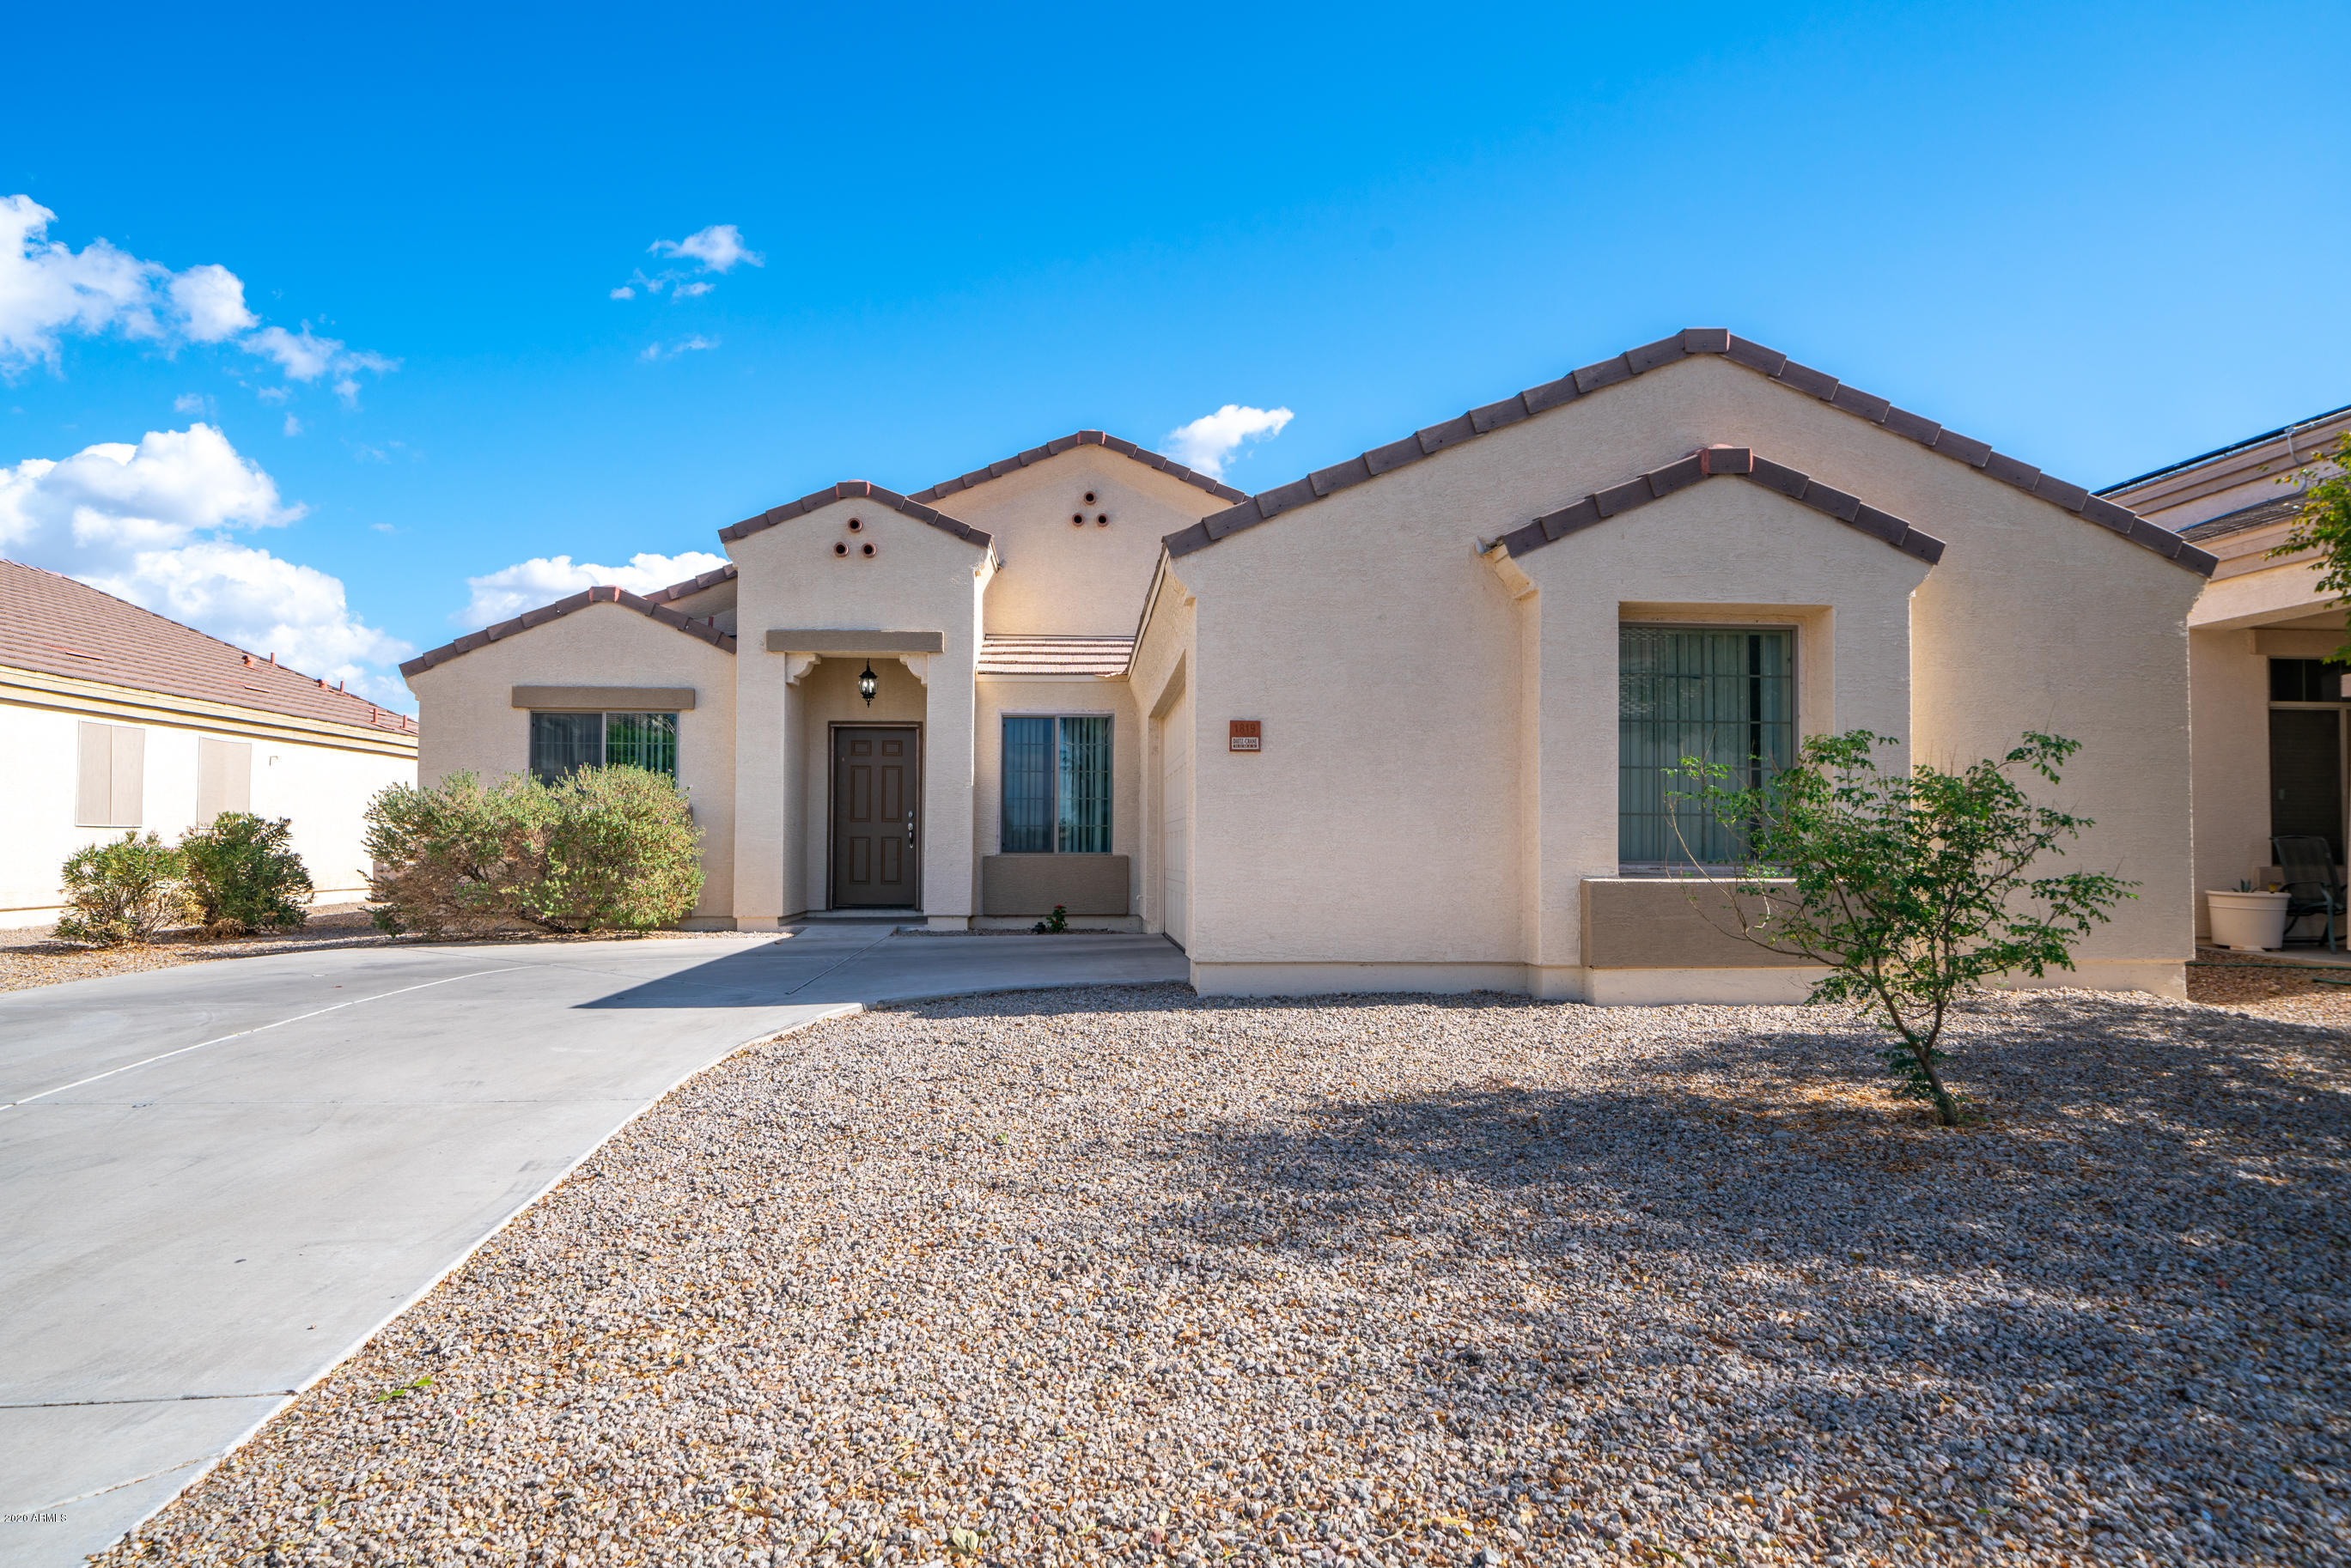 MLS 6154508 1819 S 105TH Drive, Tolleson, AZ 85353 Tolleson AZ Four Bedroom